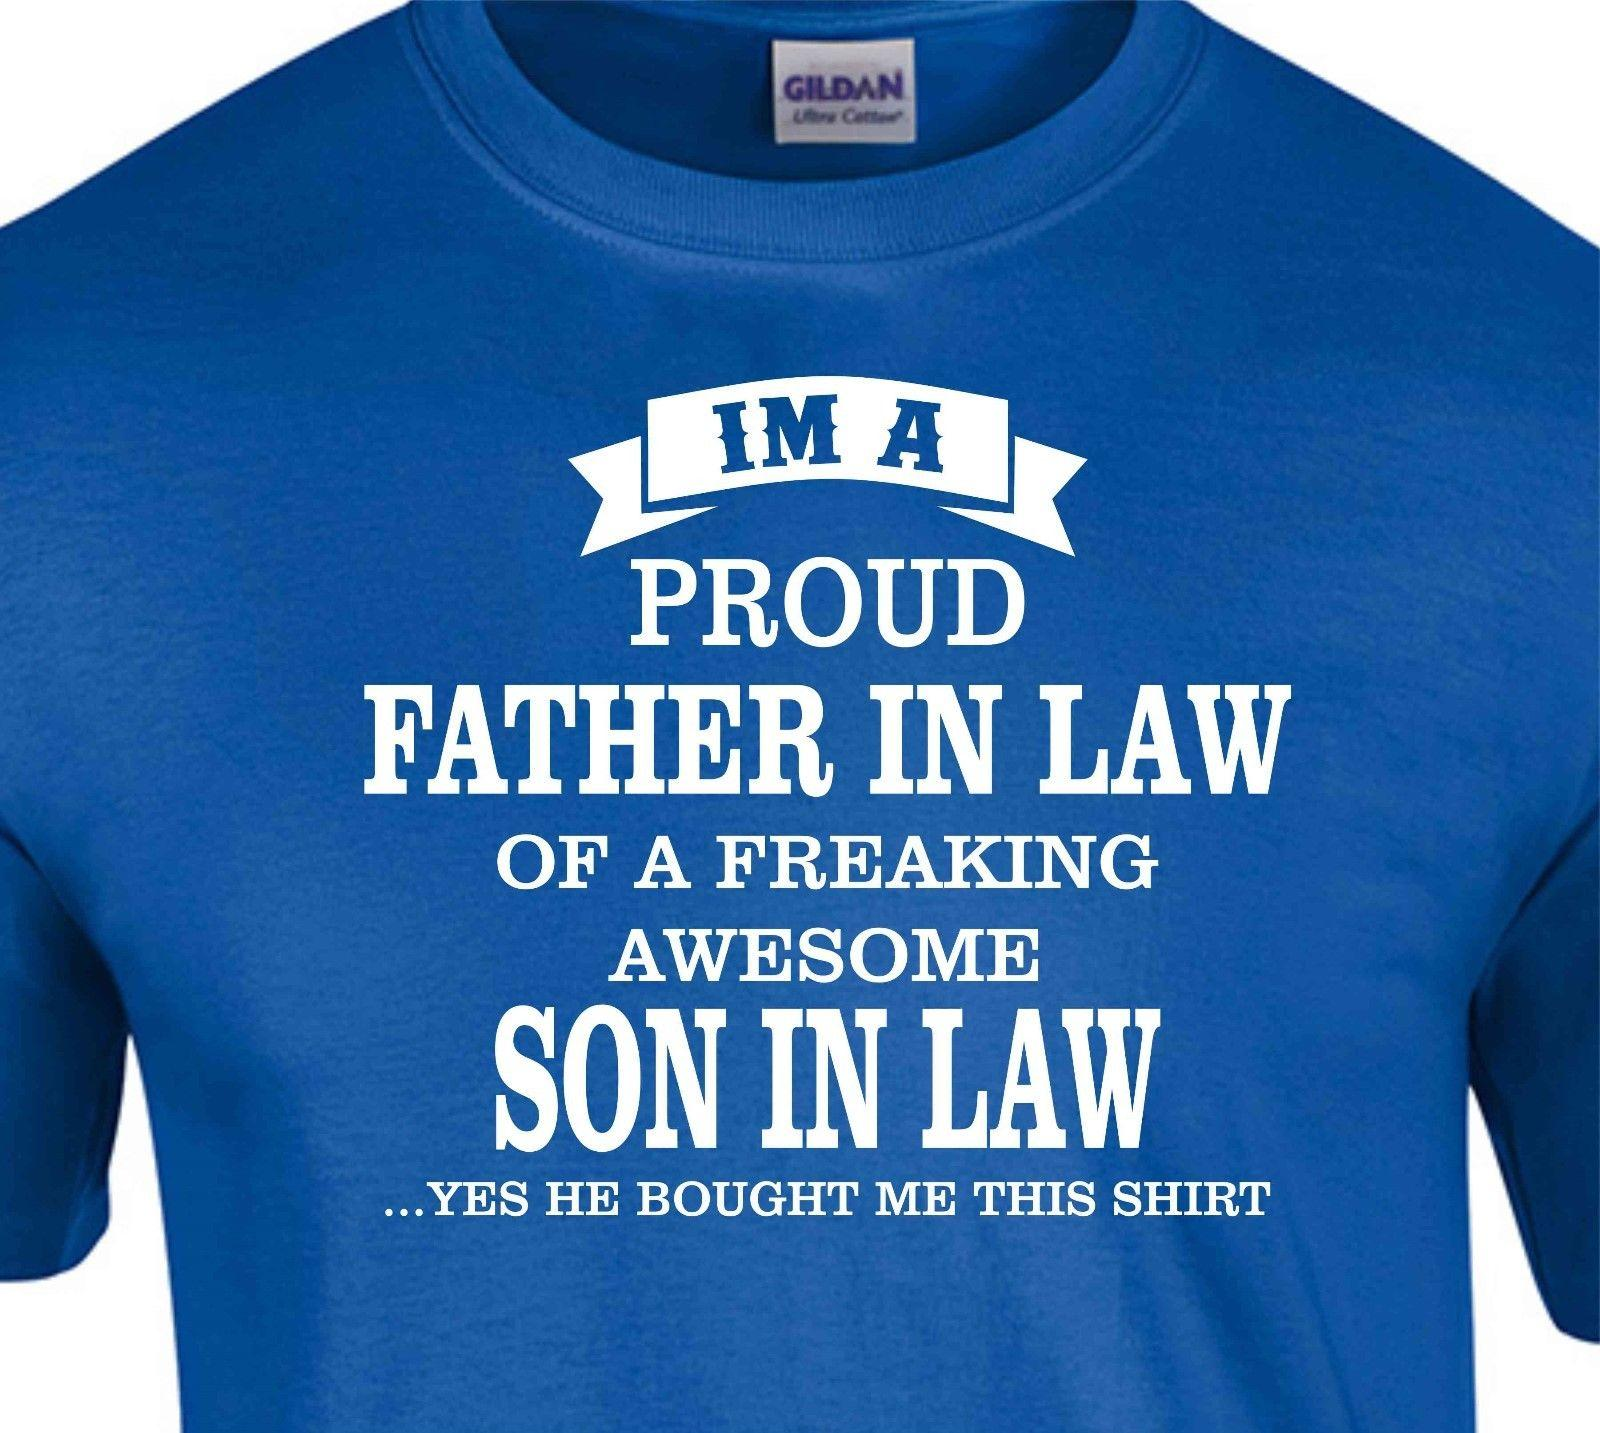 d24893c6f I'm A Proud Father In Law of a Freaking Awesome Son In Law T-shirt Fathers  Day